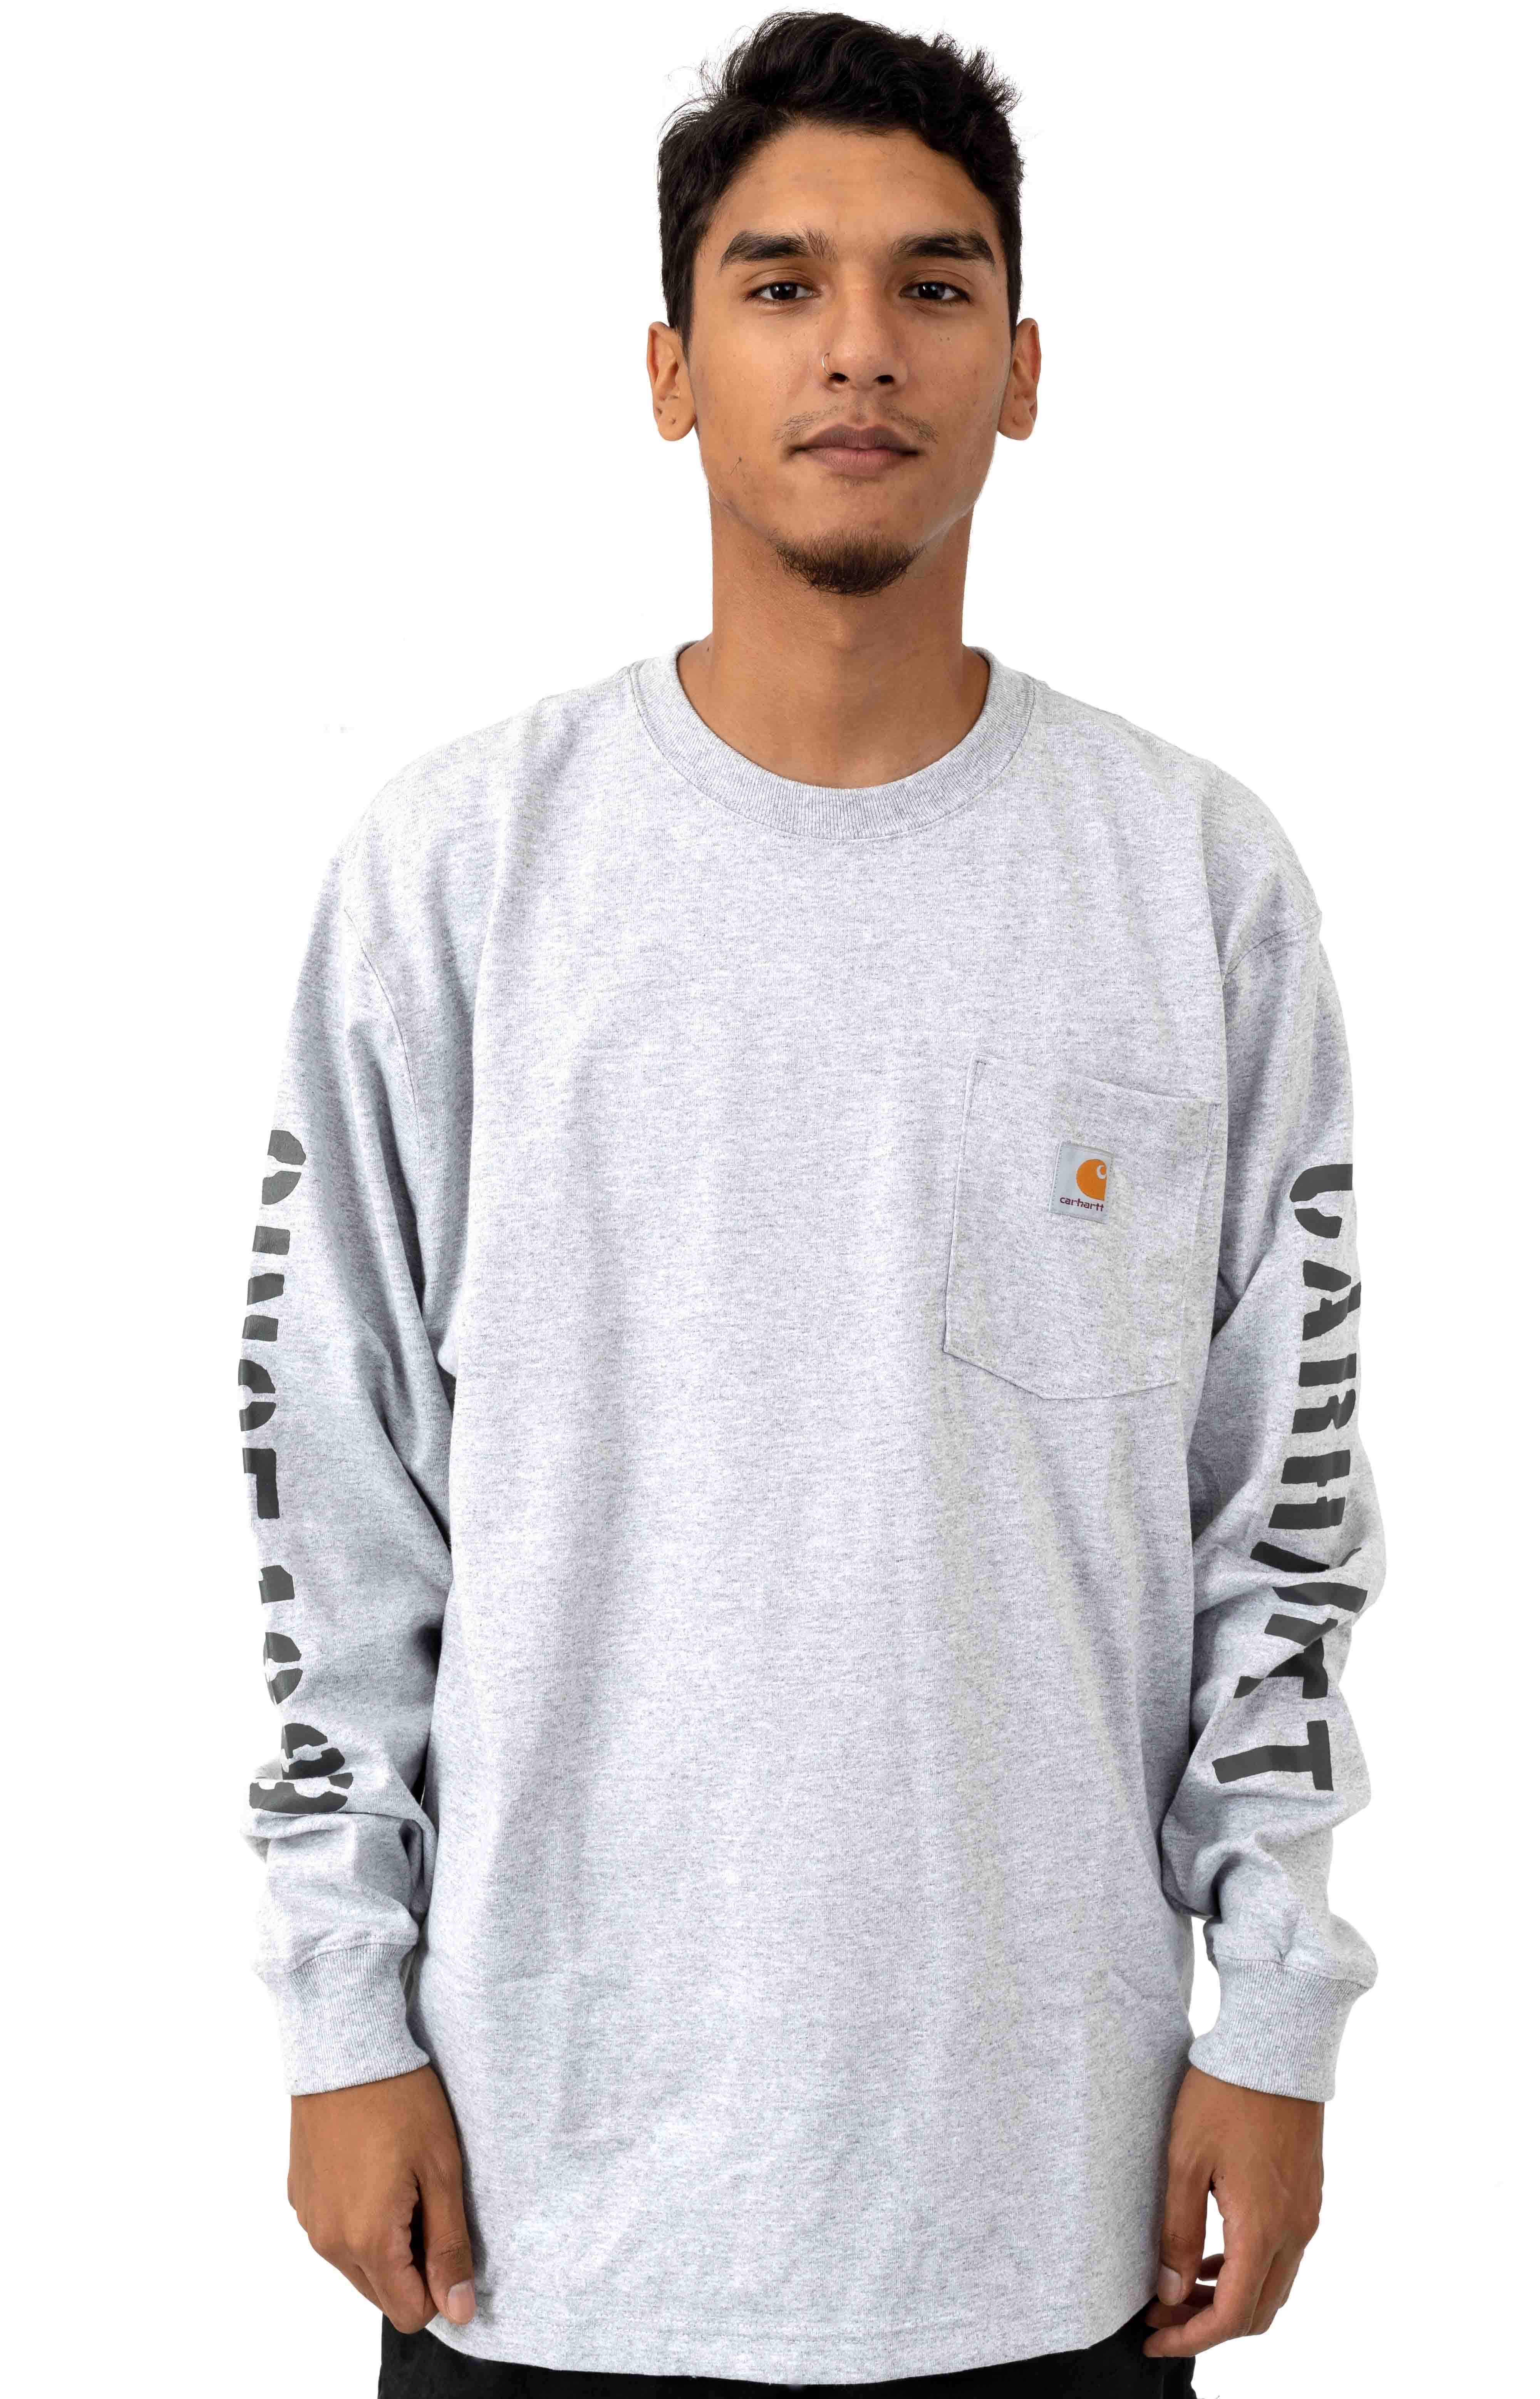 (103845) Workwear Double Sleeve Graphic L/S Pocket Shirt - Heather Grey 2